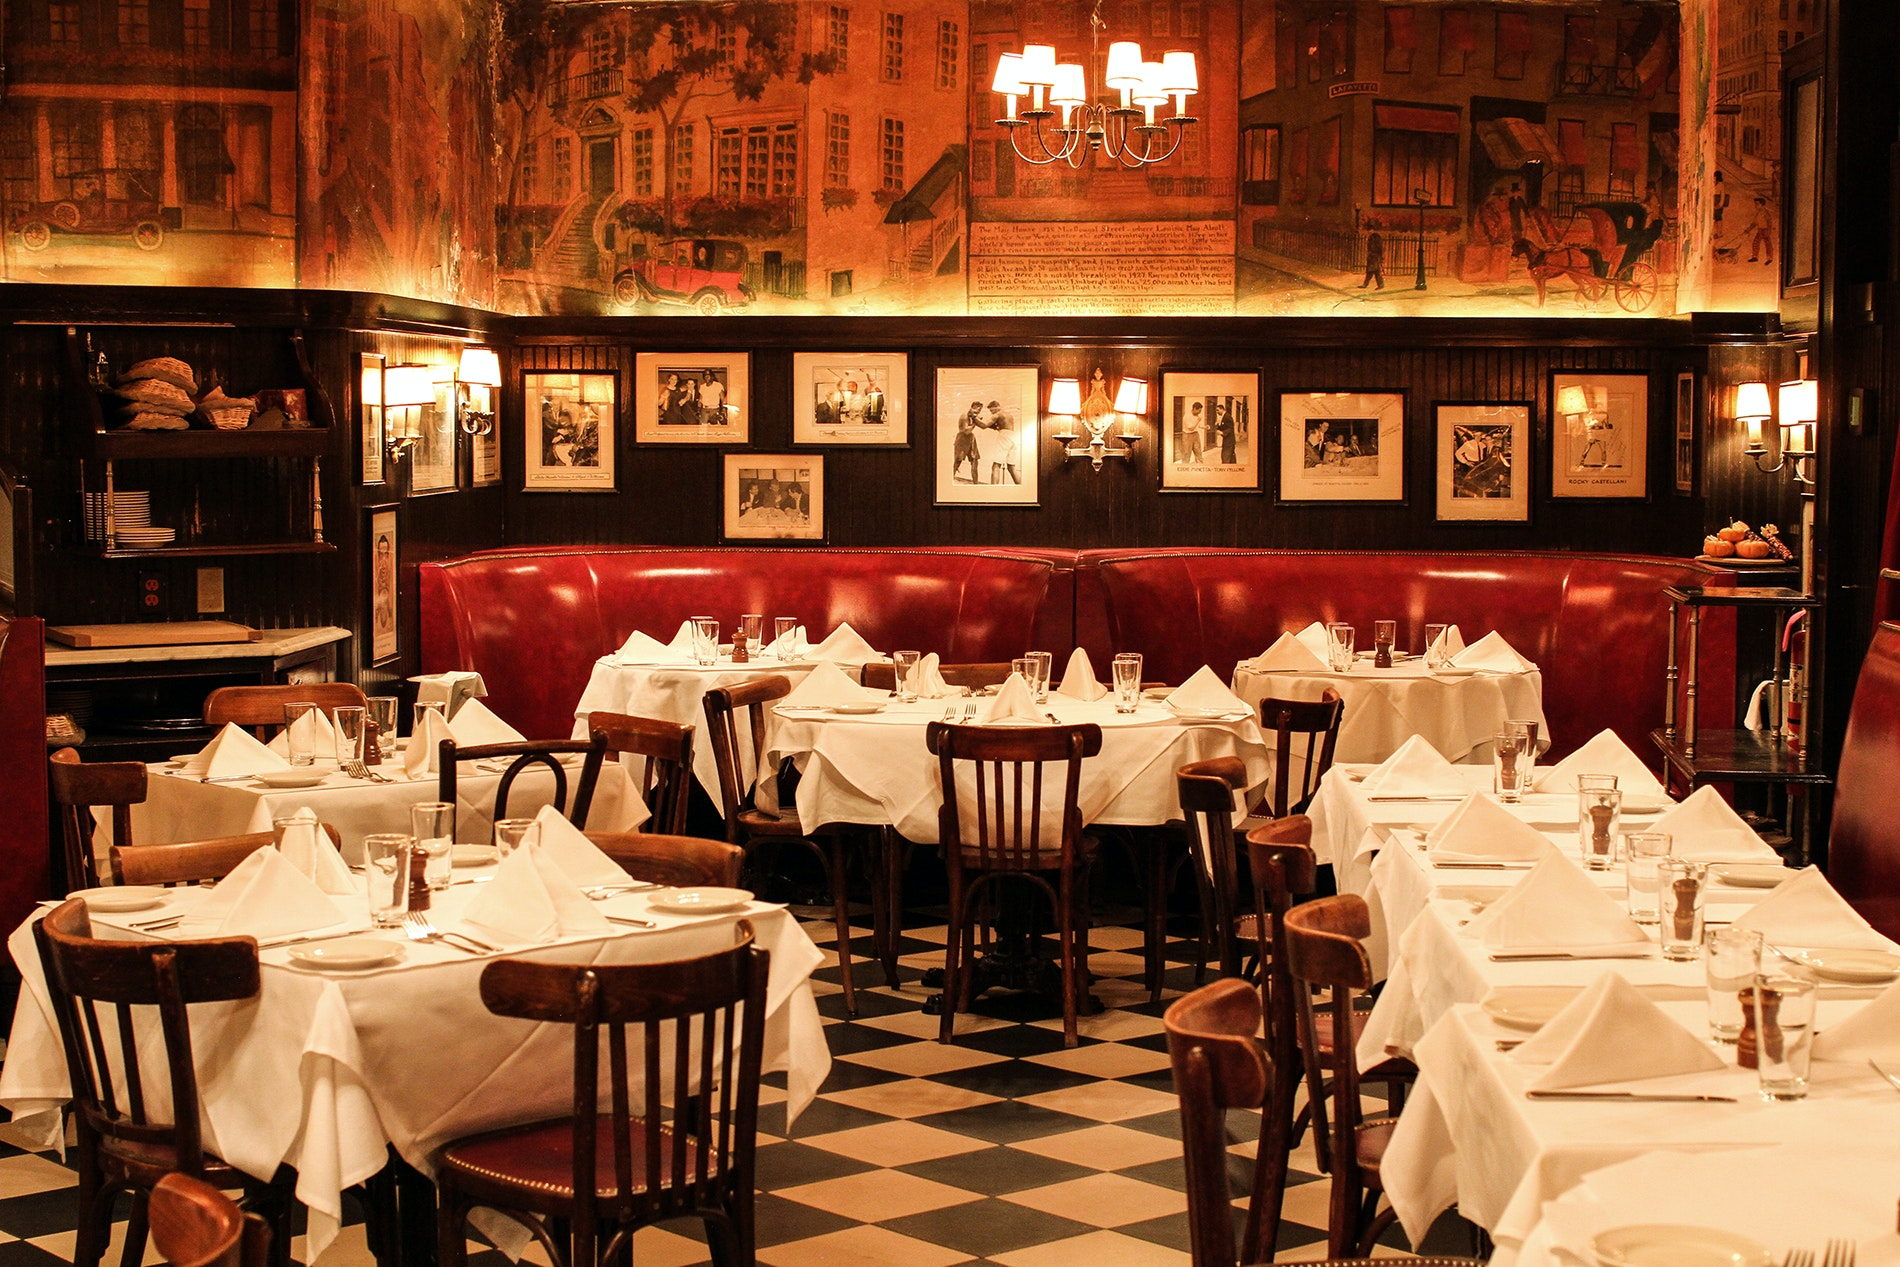 Celebrities such as Jerry Seinfeld and Sarah Jessica Parker have been known to dine at Minetta Tavern.